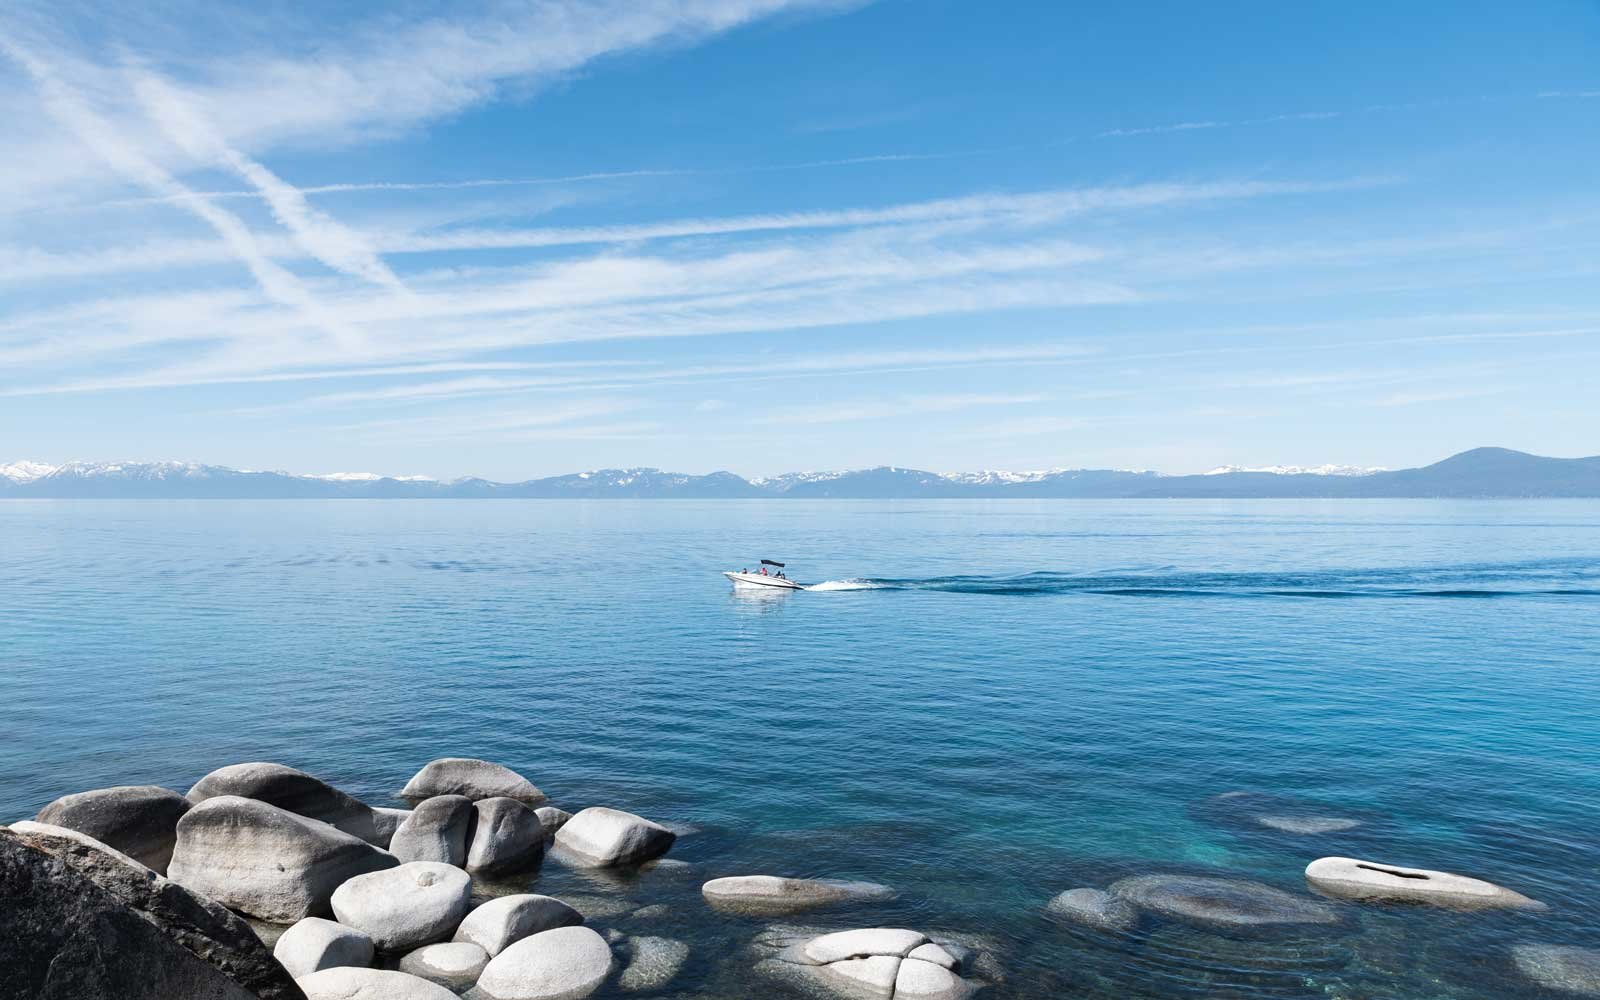 Speedboat goes through the Lake Tahoe waters